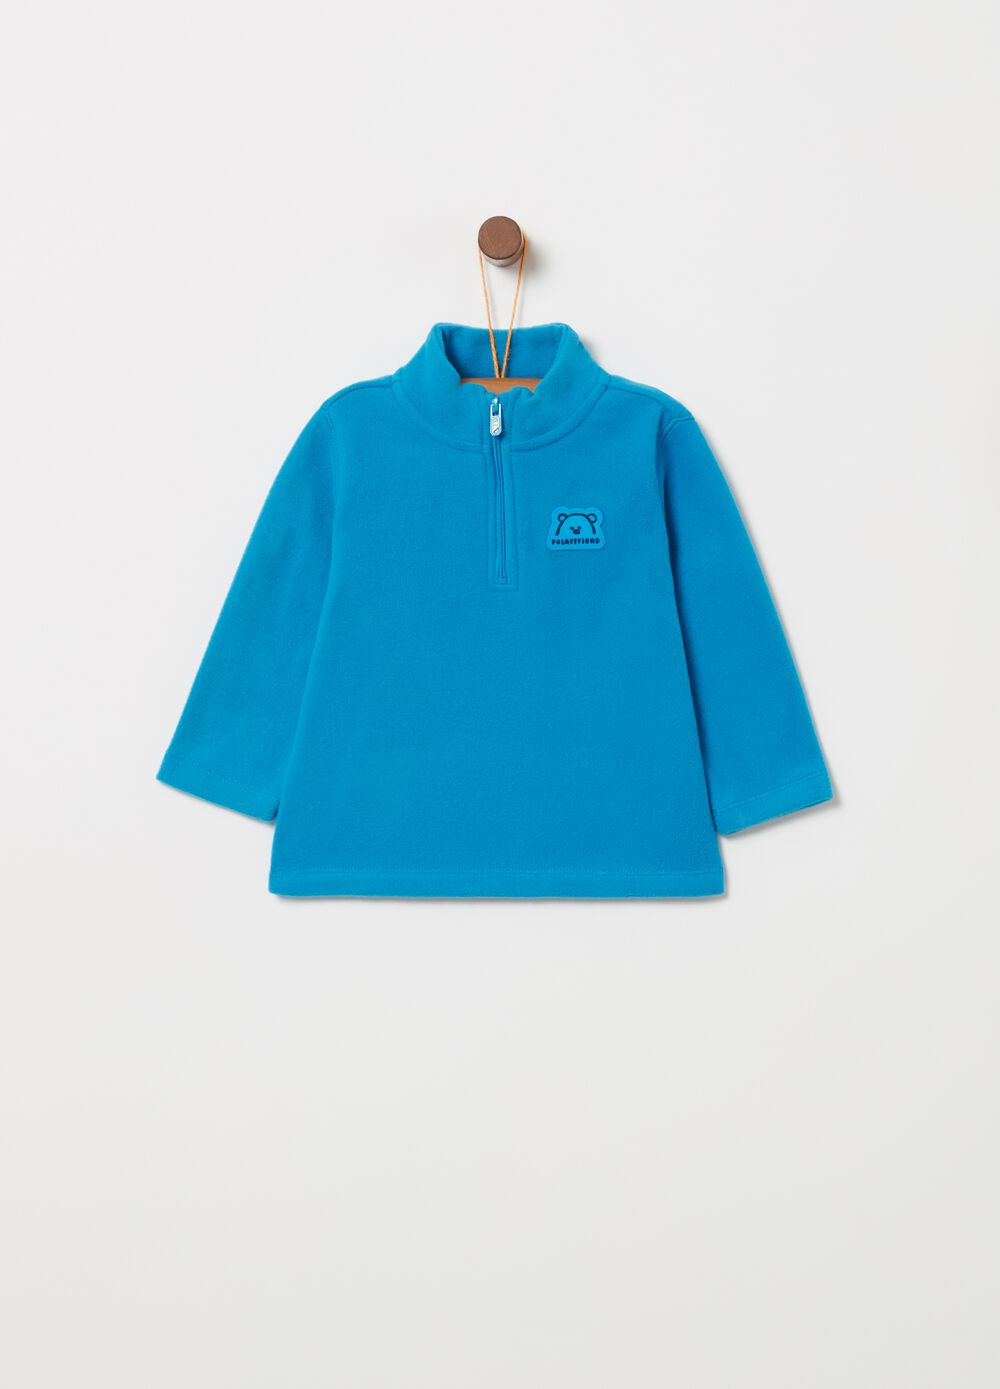 Sustainable fleece turtleneck jumper with label